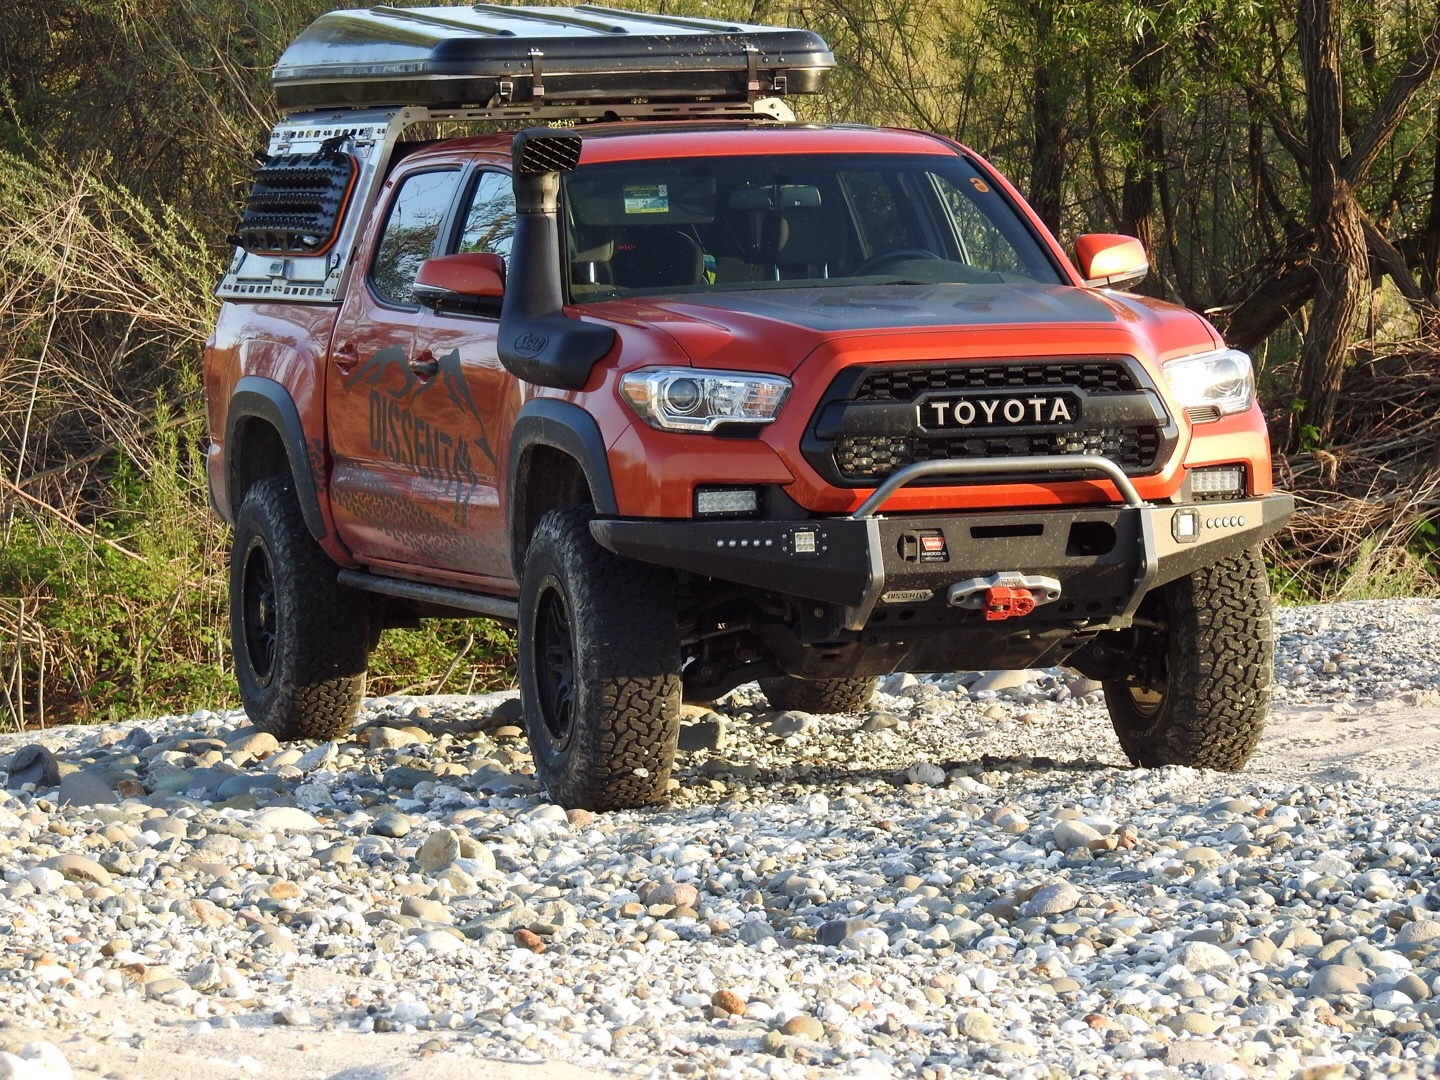 Dissent offroad 2016 Tacoma trd build  | Page 11 | Expedition Portal